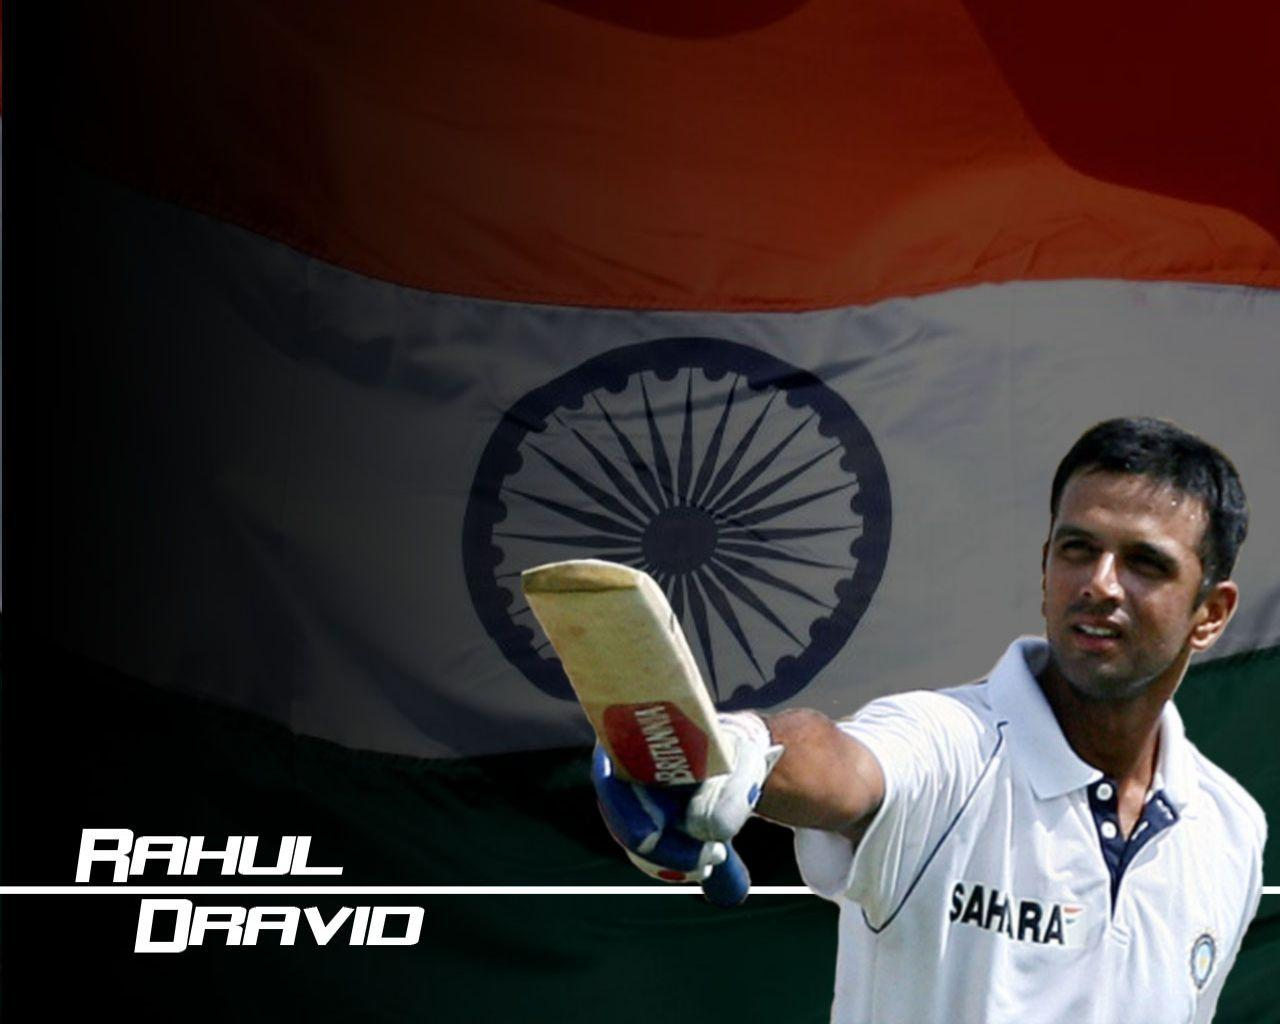 Rahul Dravid Wallpapers, 49 Best HD Backgrounds of Rahul Dravid